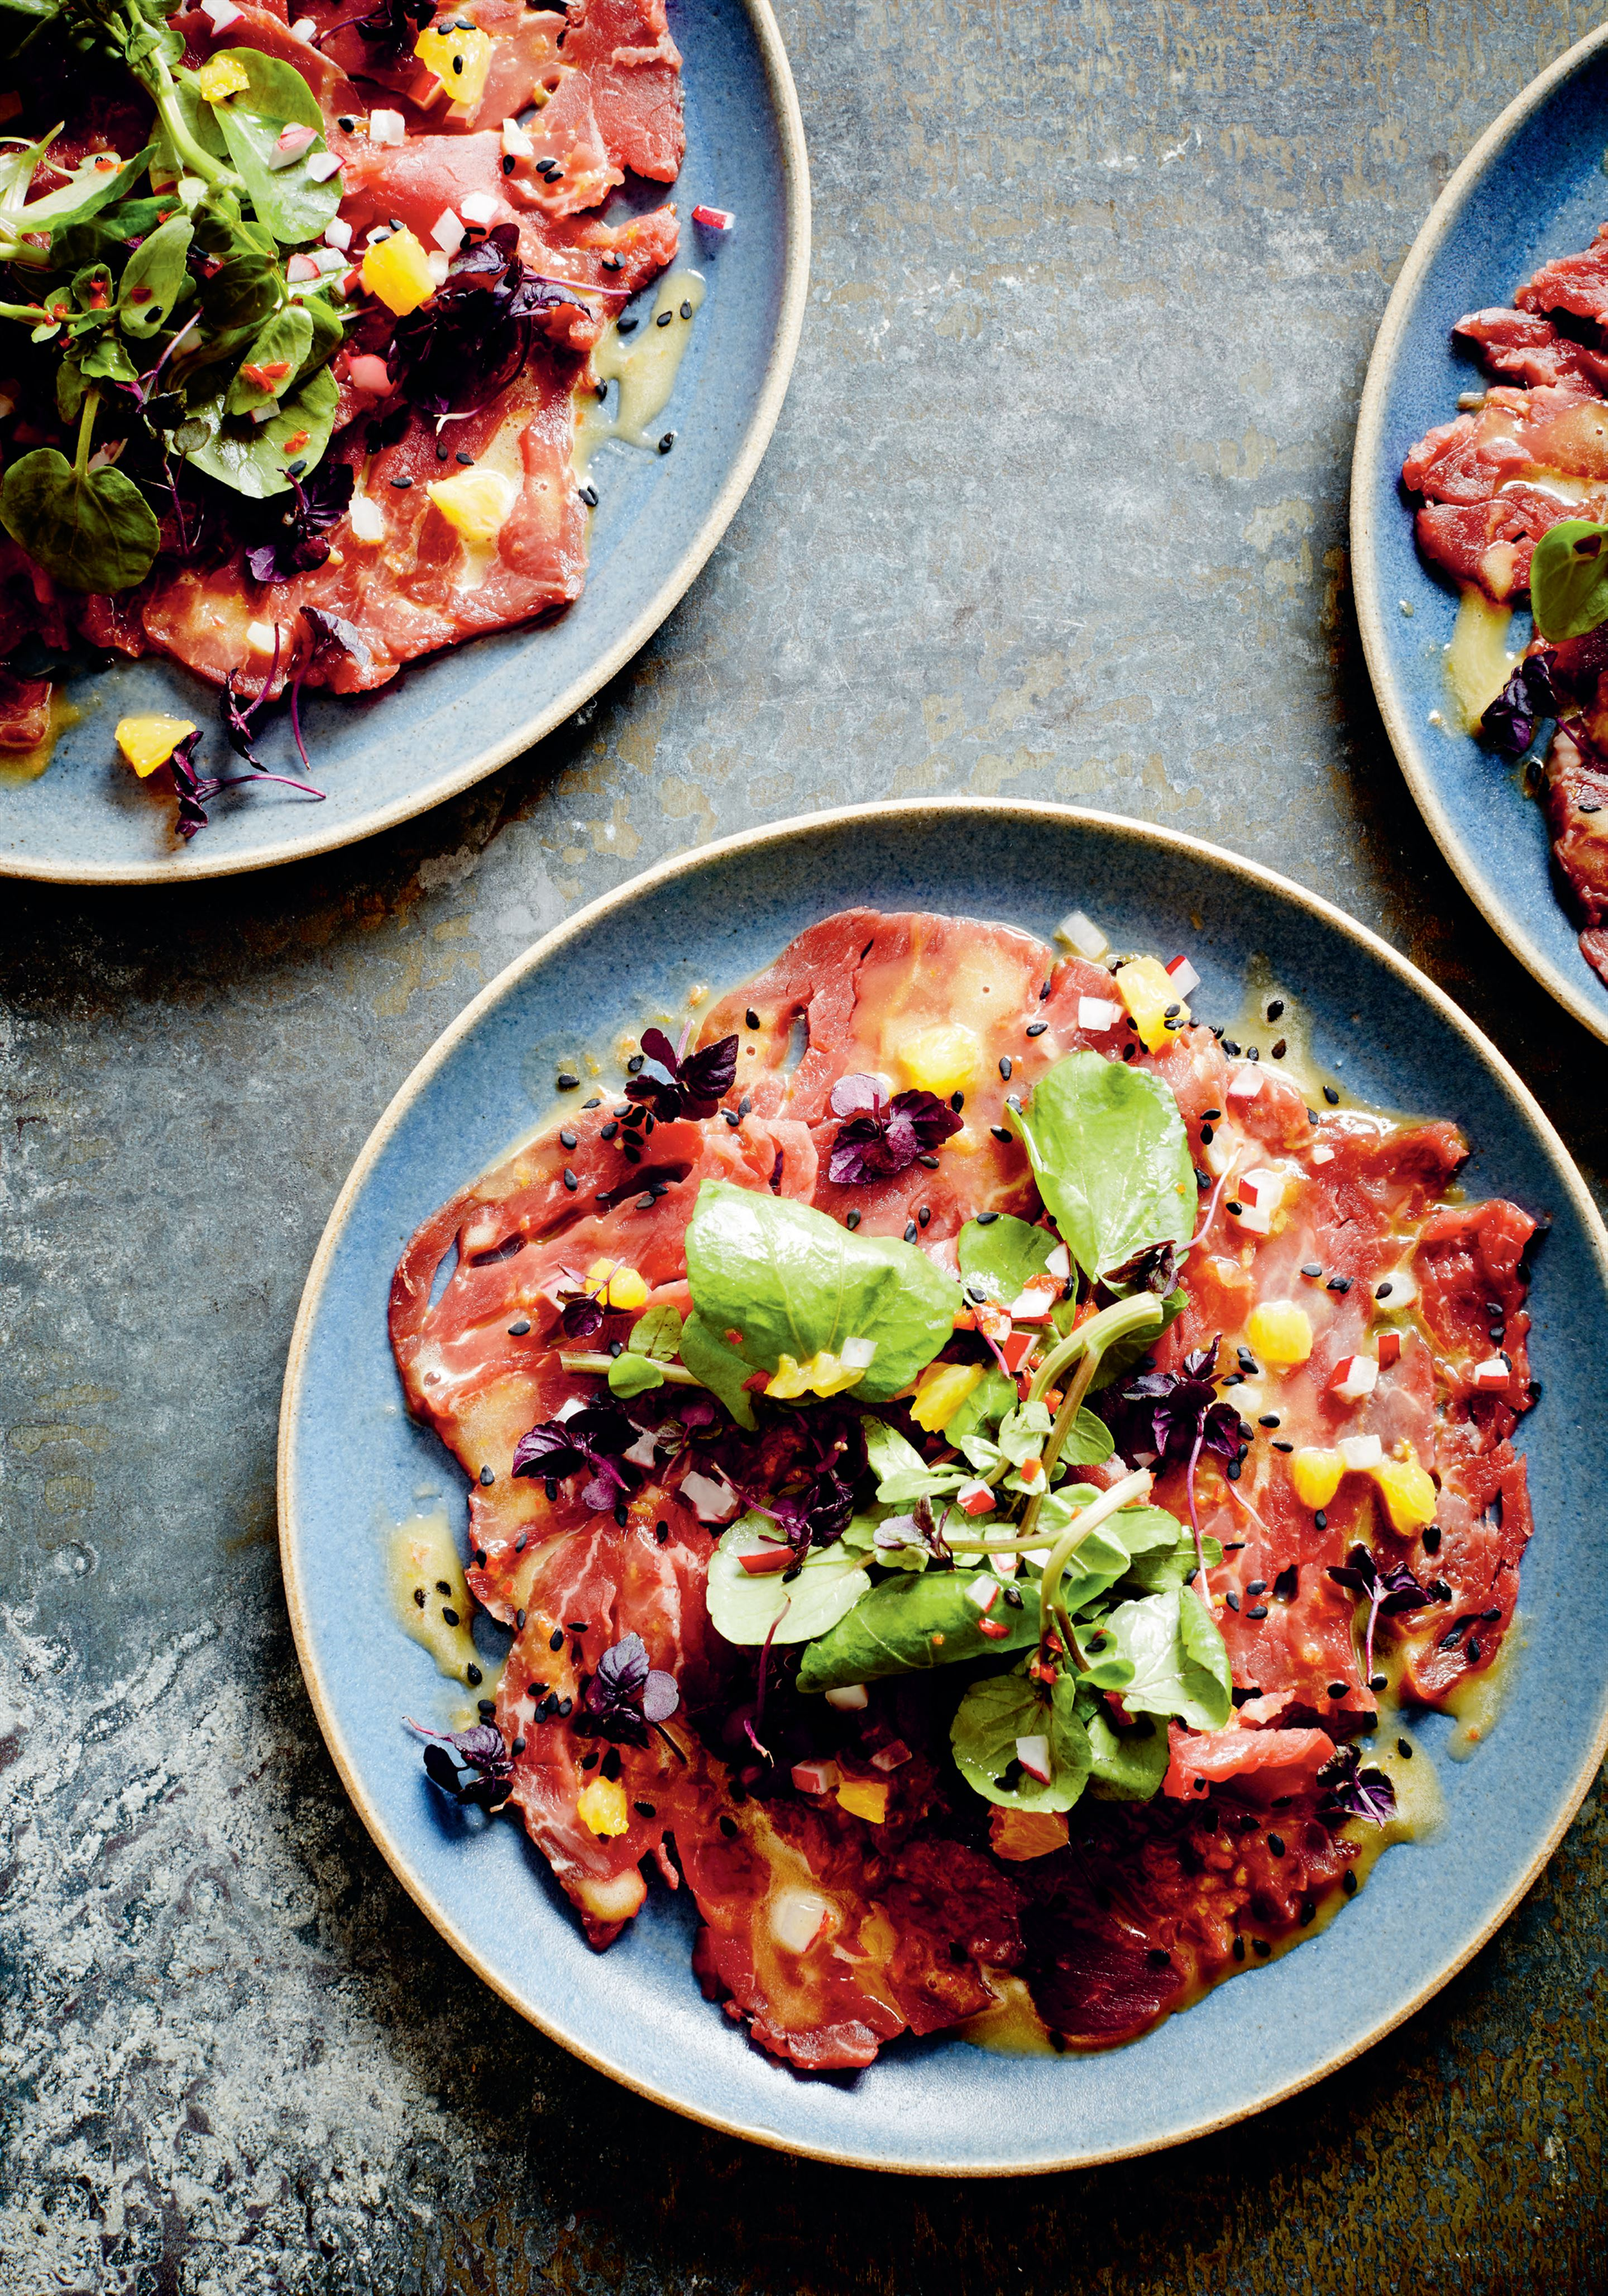 Beef carpaccio salad with lemon-mandarin-kosho dressing